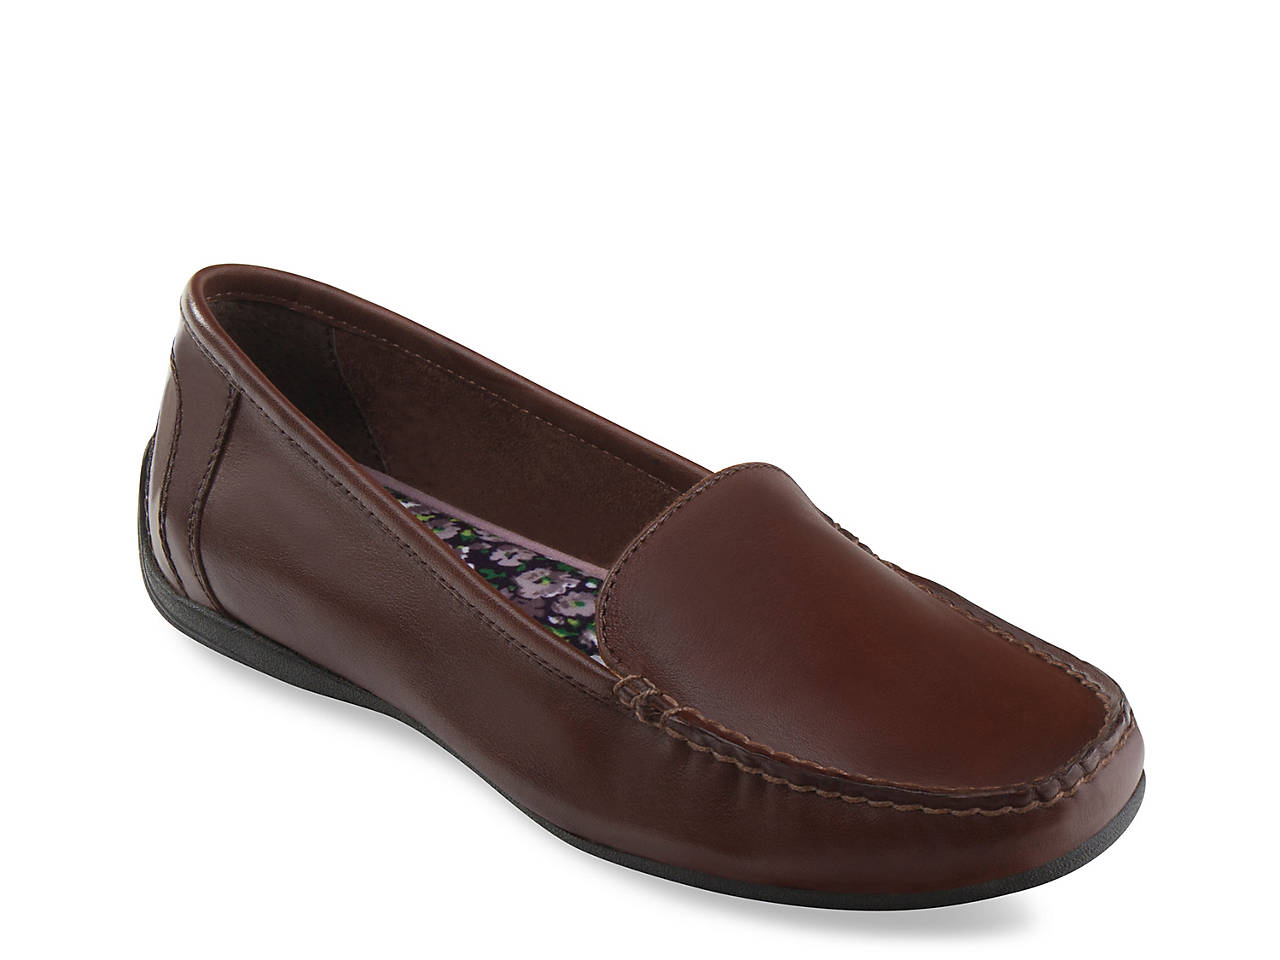 Jcpenney Womens Shoes Loafers